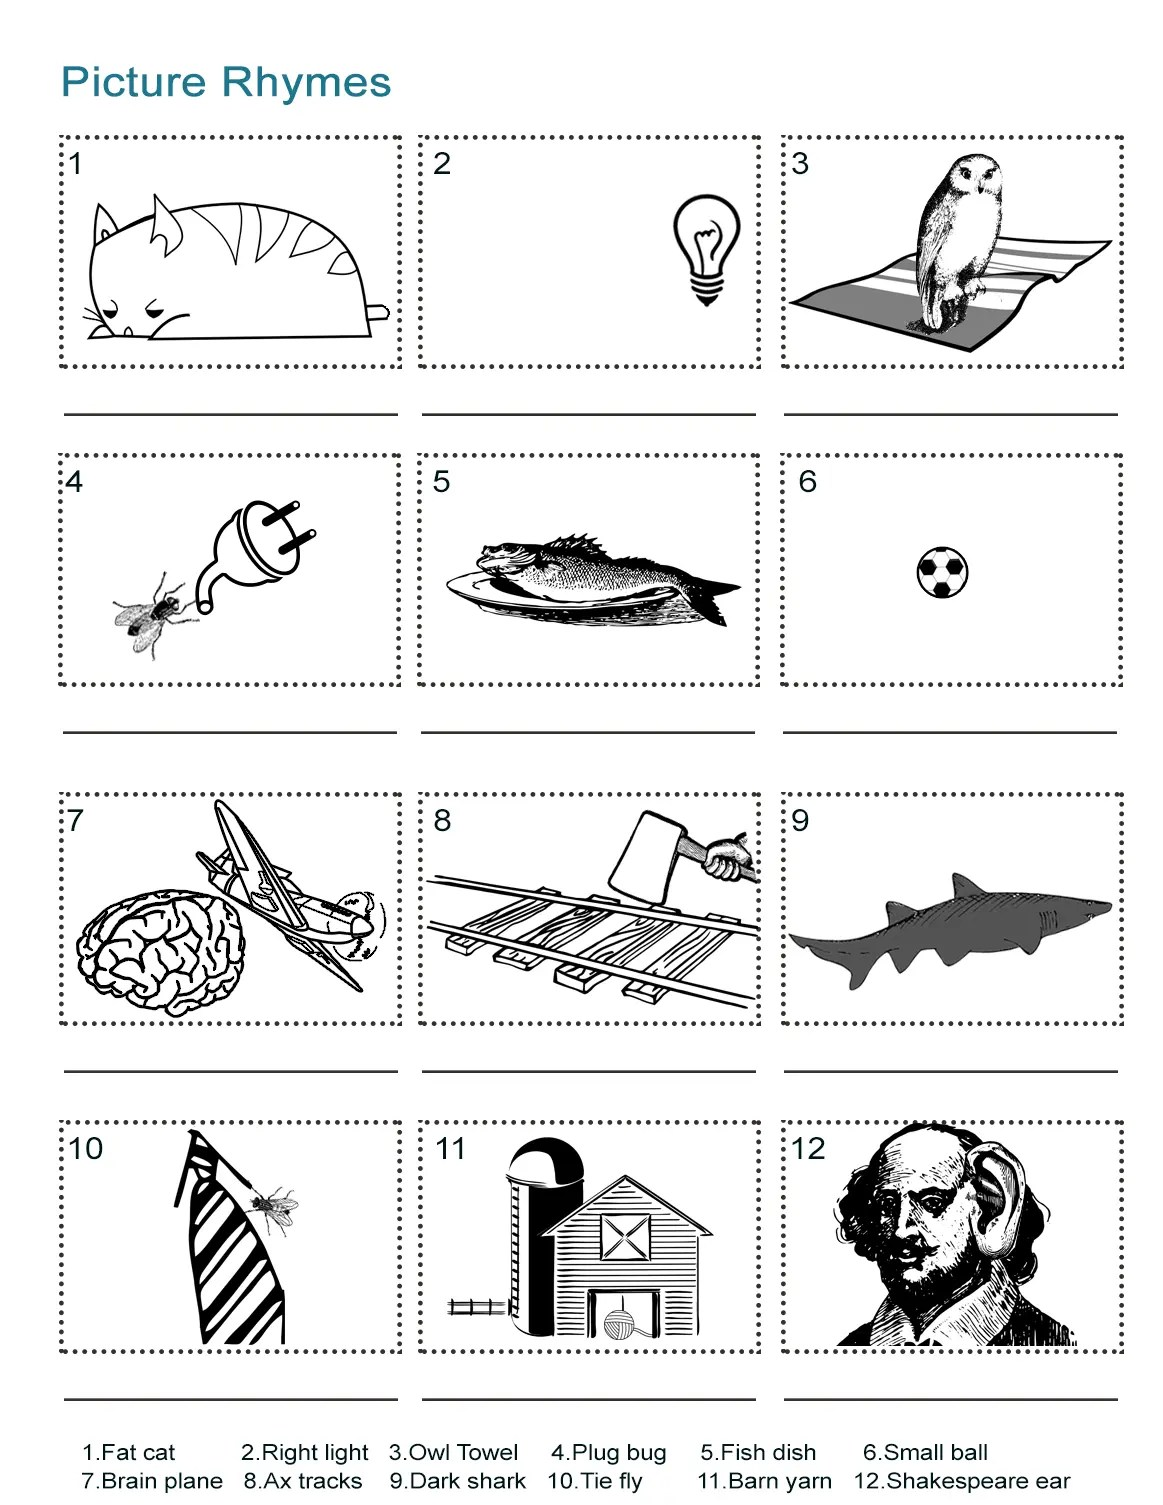 Picture Rhymes Worksheet What Is The Rhyming Word In Each